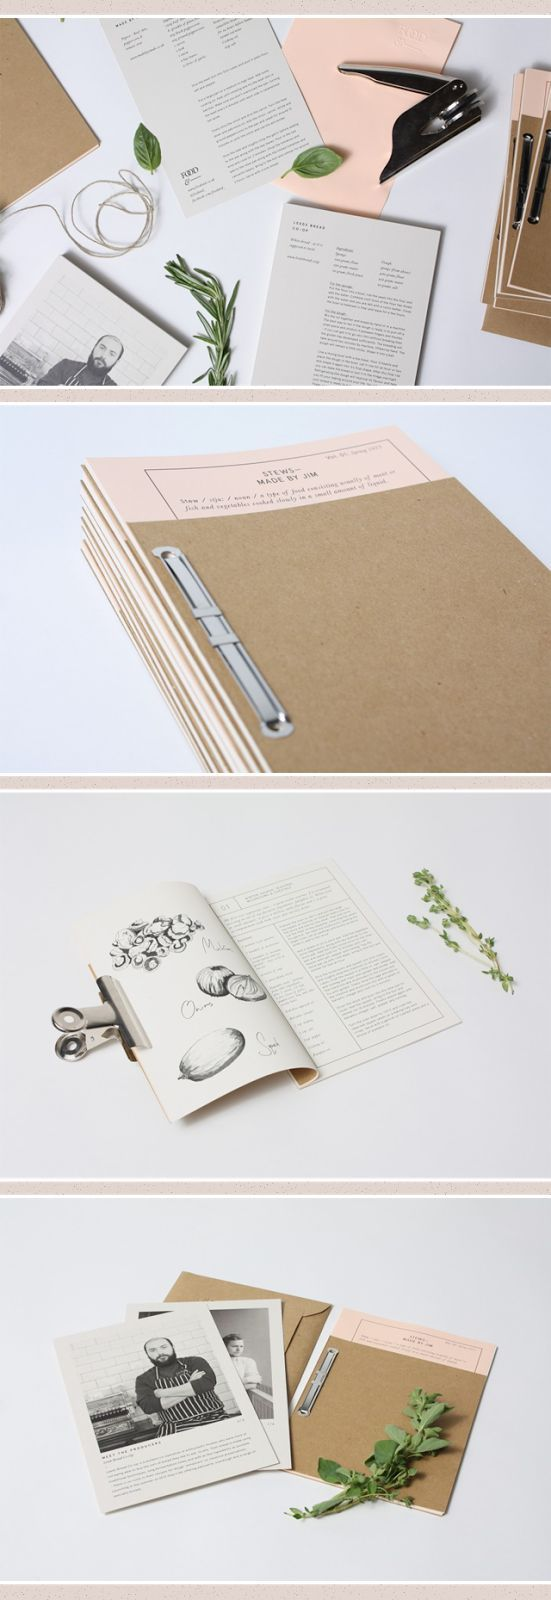 Editorial print design / layout via Joanna Hobbs Design - Graphic design